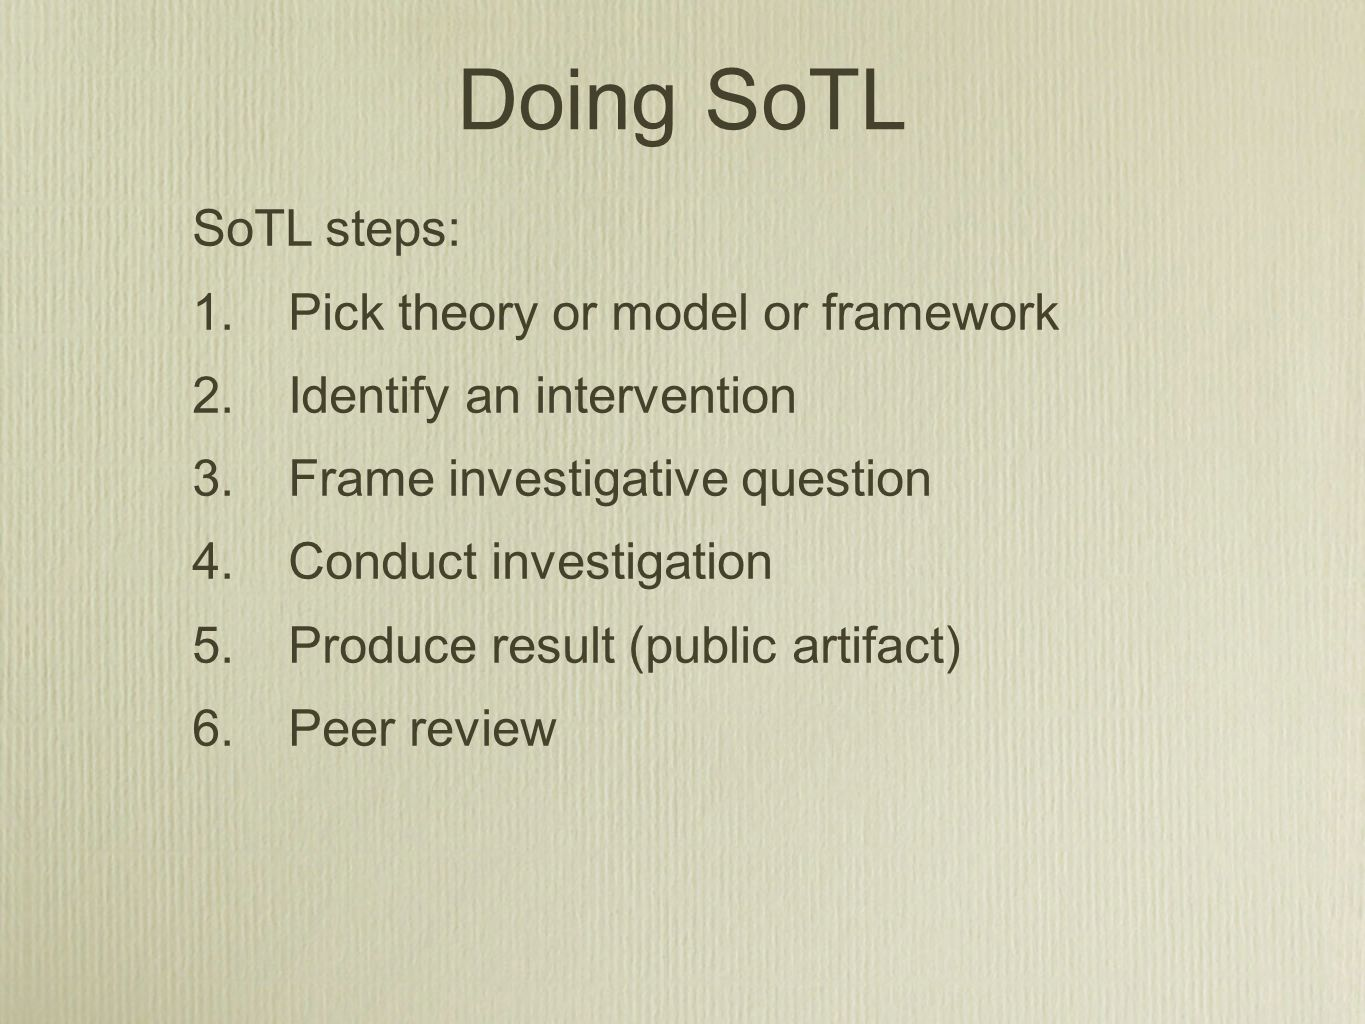 SoTL steps: 1.Pick theory or model or framework 2.Identify an intervention 3.Frame investigative question 4.Conduct investigation 5.Produce result (pu